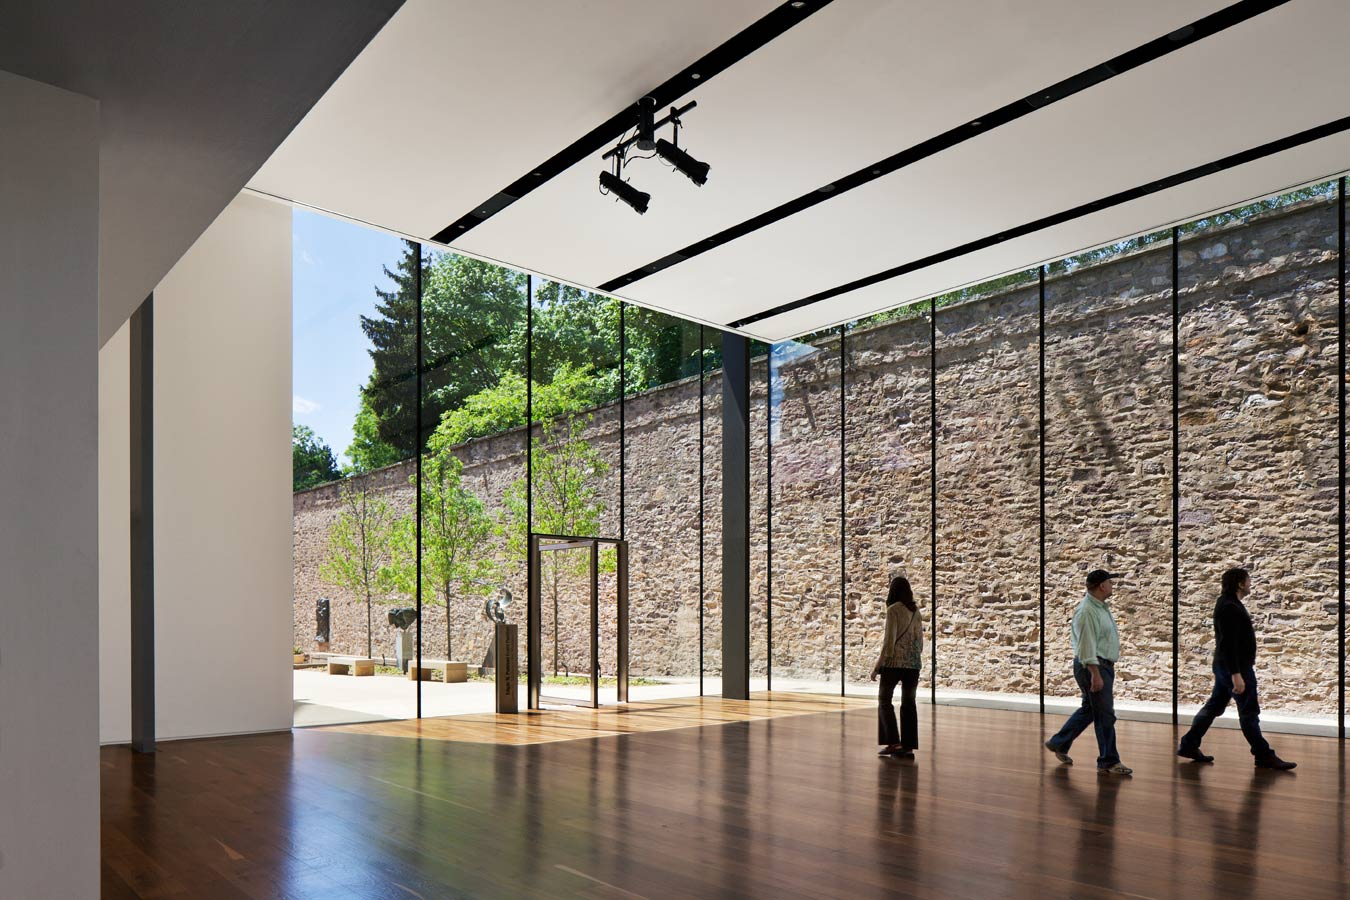 <p>A range of programs and events, including lectures, performances, and private parties, can be accommodated by the new pavilion, which adds an additional revenue stream for the museum. <br><small>© Michael Moran/OTTO</small> </p>